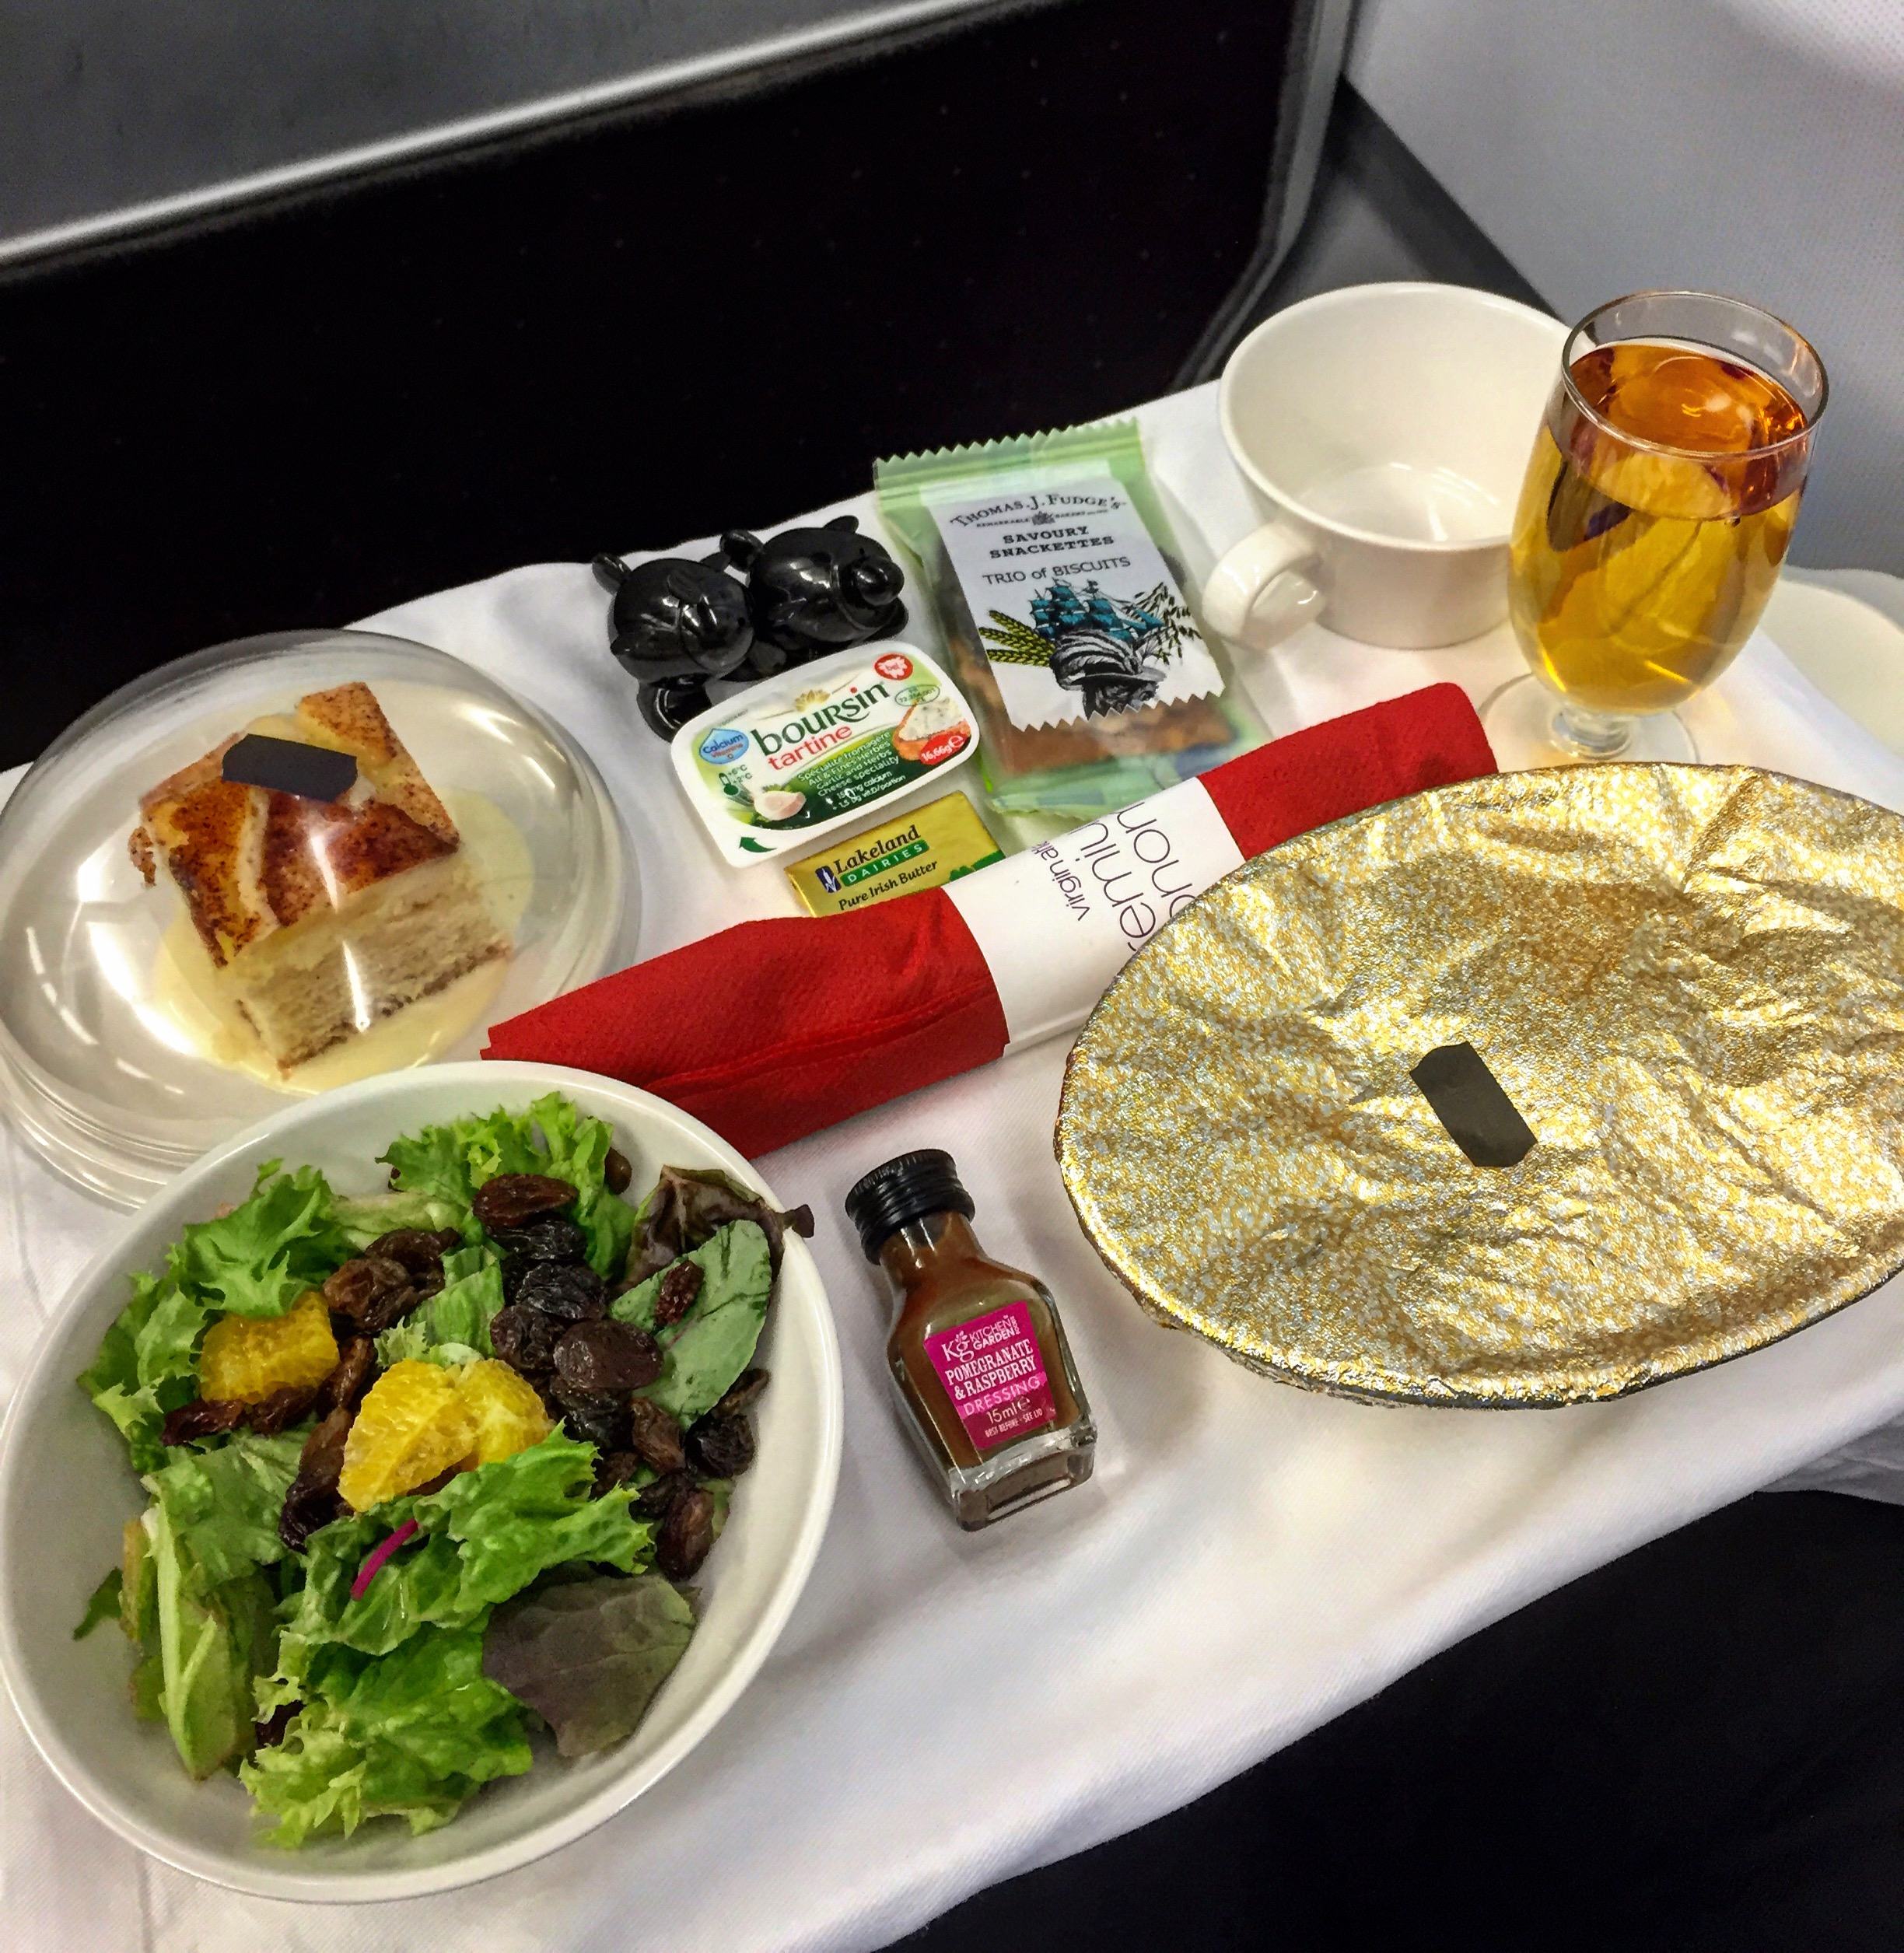 VIRGIN ATLANTIC | AEROPLANE FOOD | WE LOVE FOOD, IT'S ALL WE EAT2